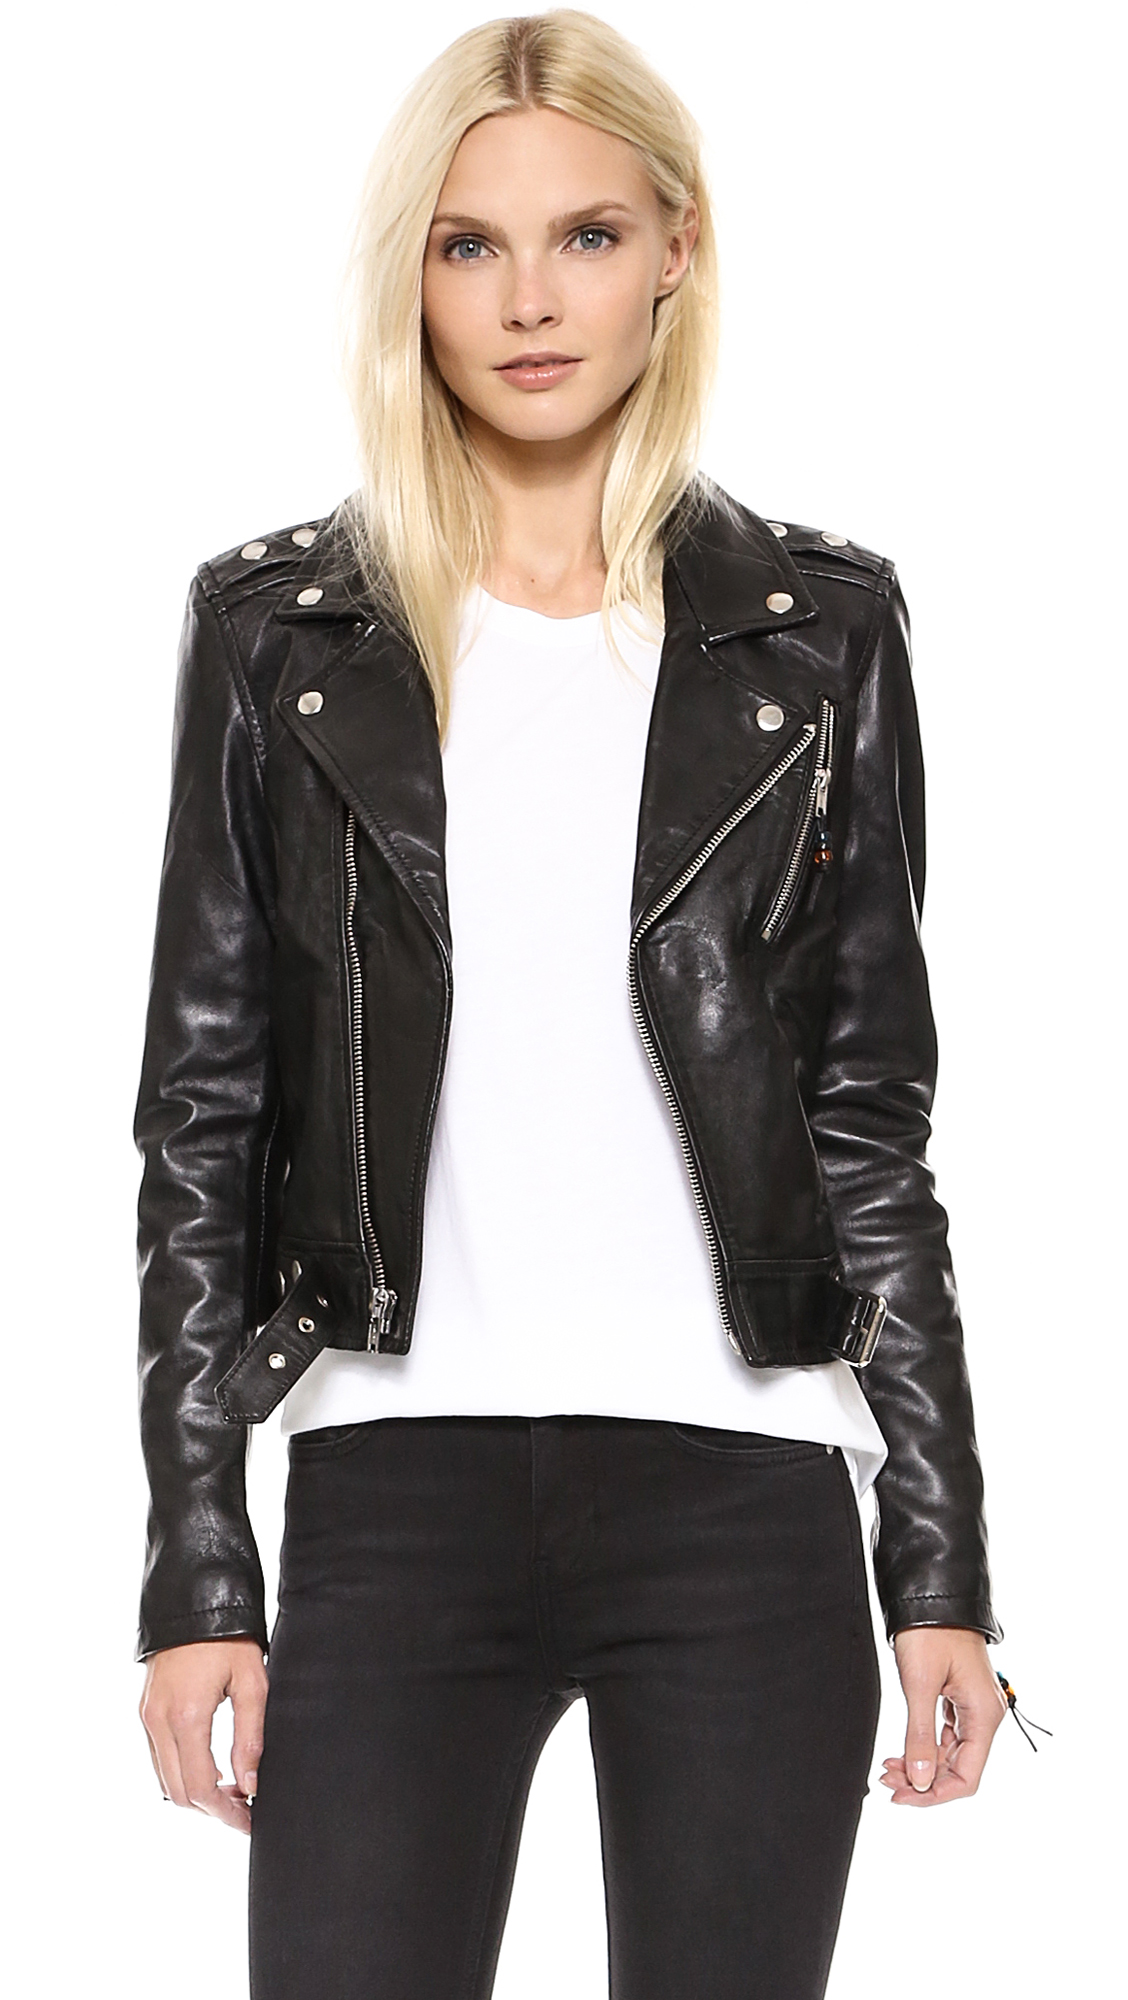 Leather jacket women - Blk Dnm Leather Jacket 1 15 Off First App Purchase With Code 15foryou